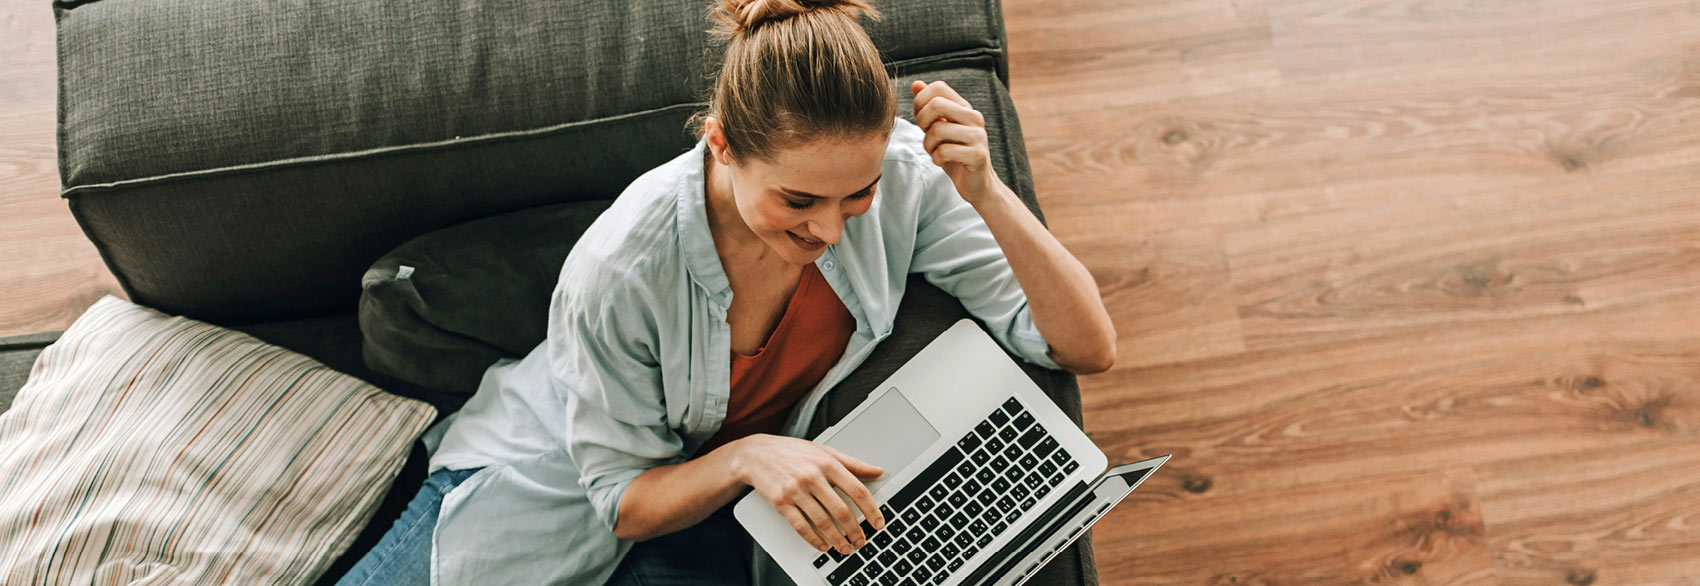 Woman using laptop to check her online account